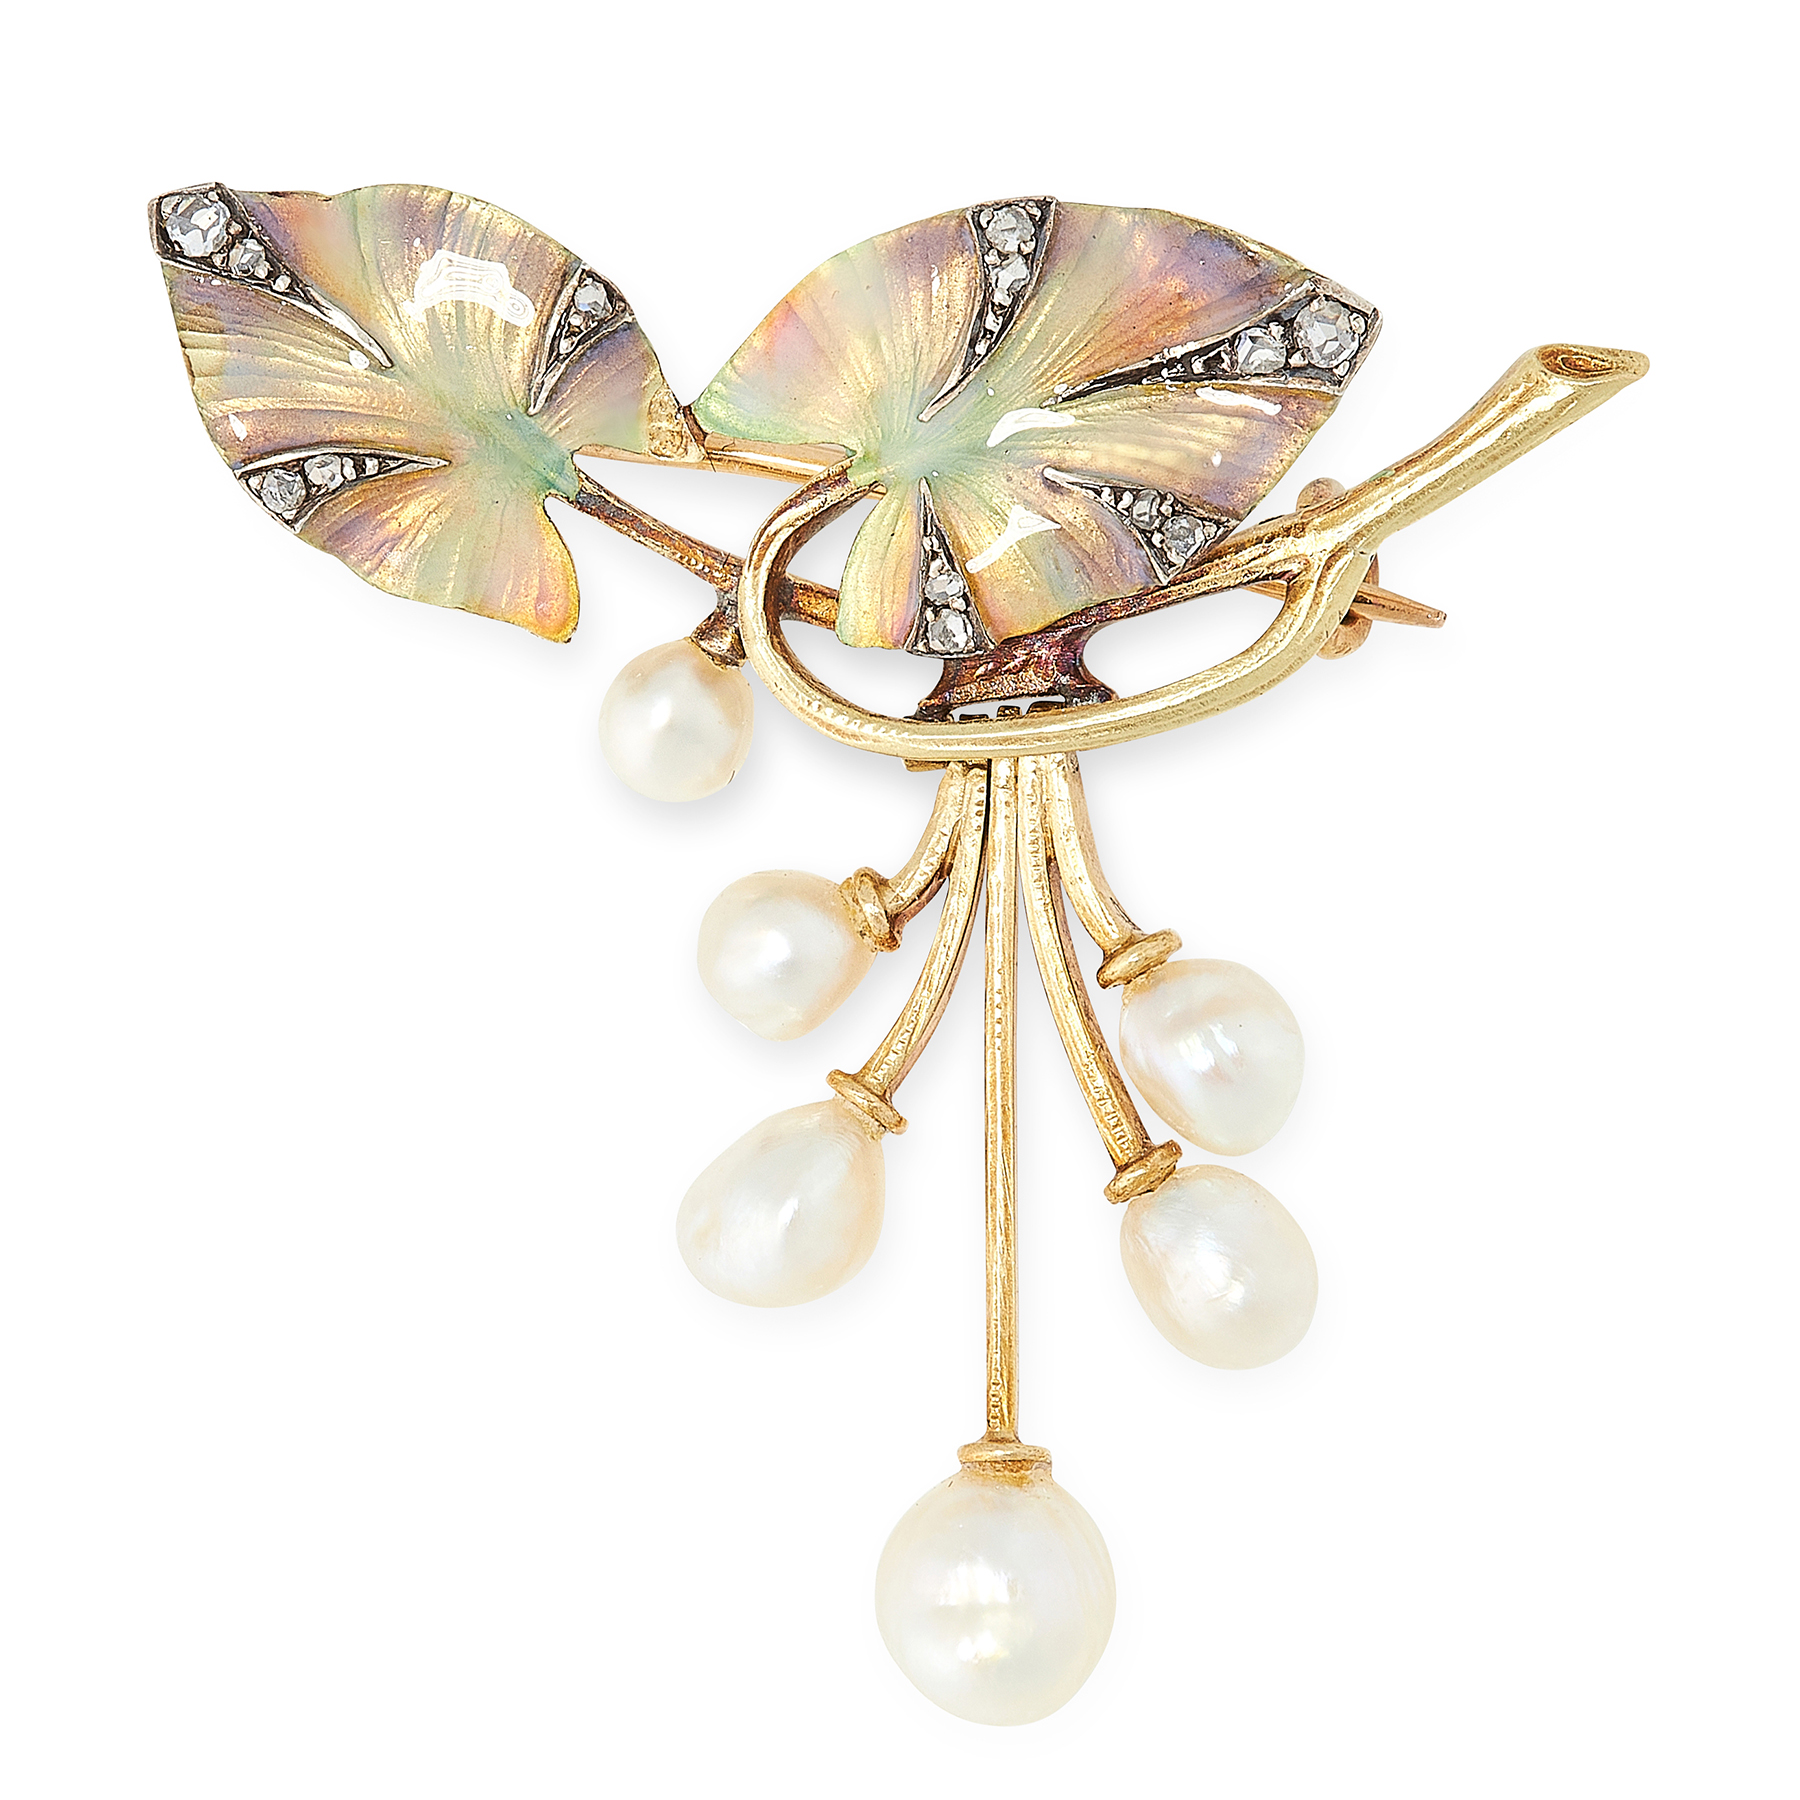 AN ART NOUVEAU PEARL, ENAMEL AND DIAMOND BROOCH, EARLY 20TH CENTURY in 18ct yellow gold, designed as